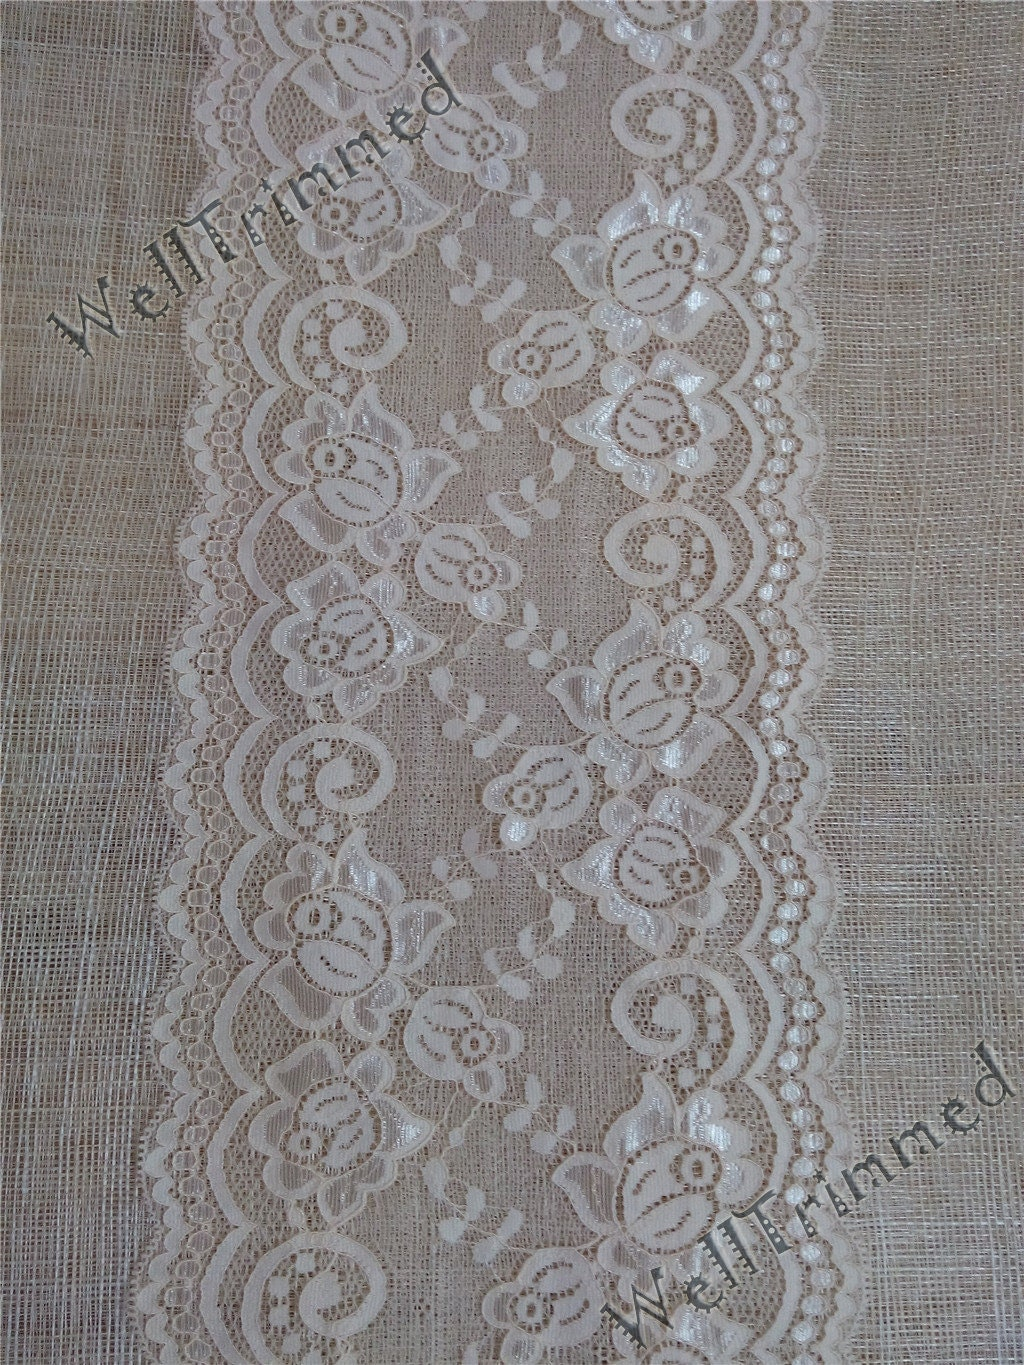 peach lace table runner wedding table runner lace by welltrimmed